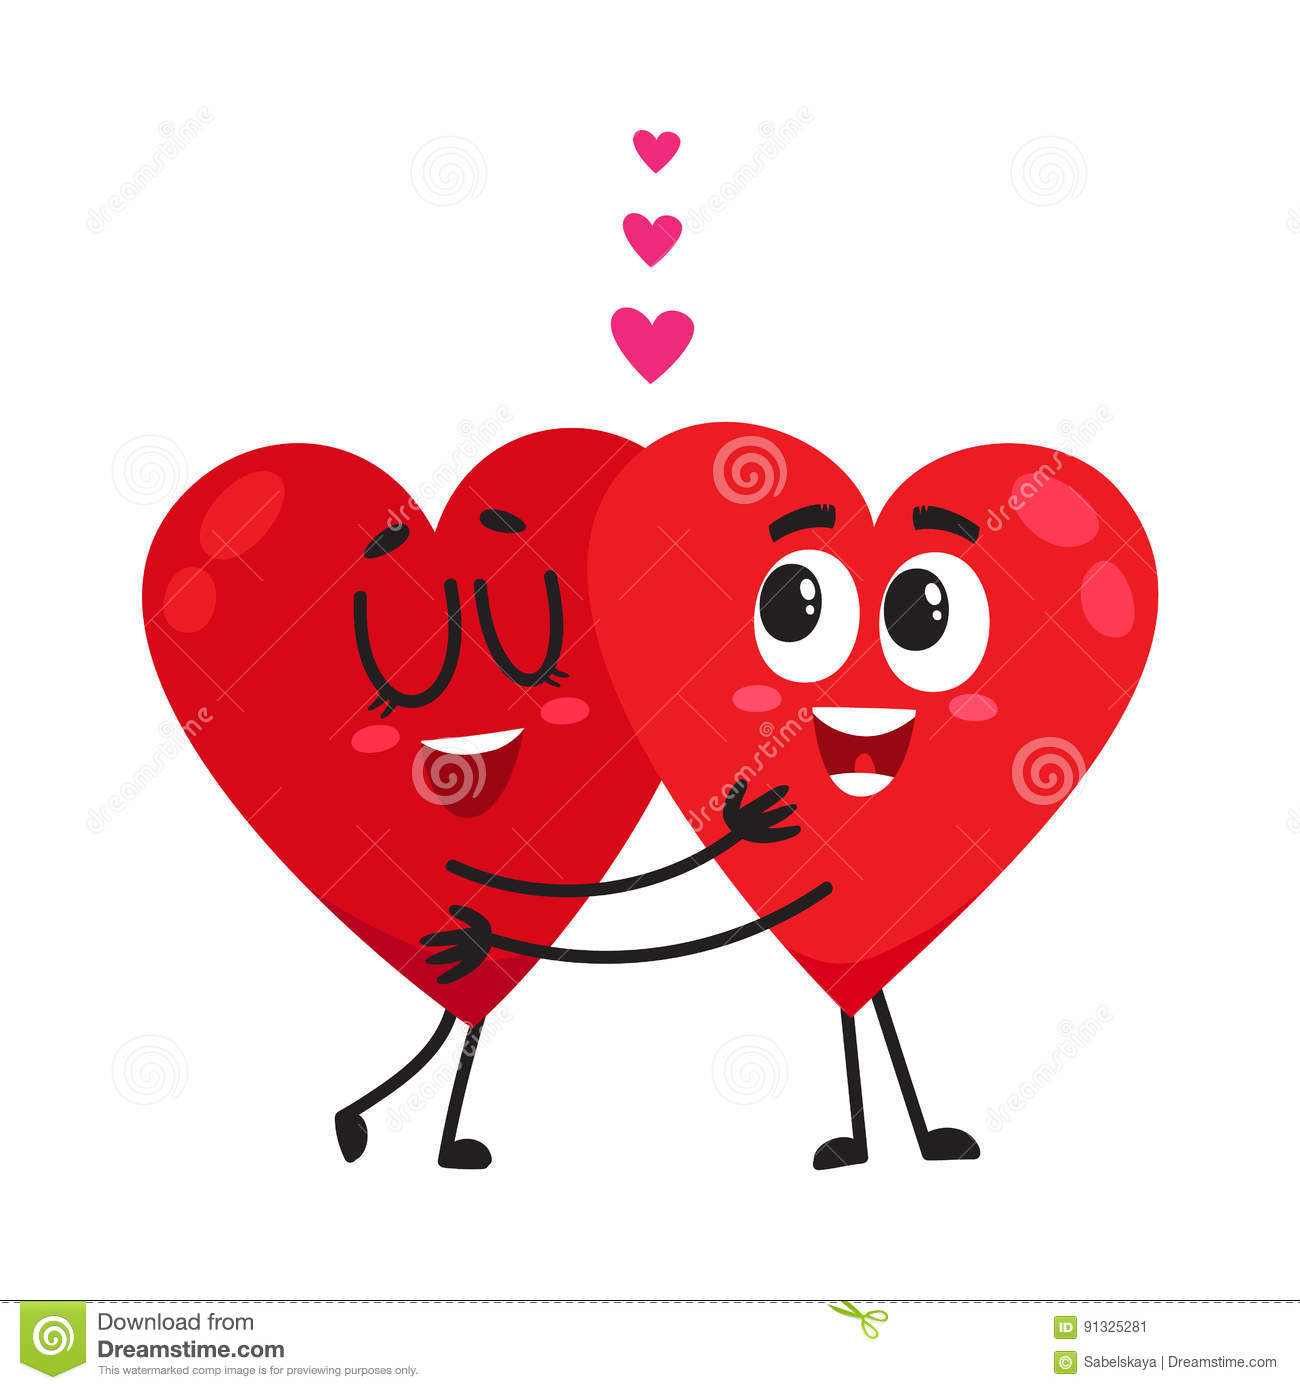 Love Each Other When Two Souls: Two Hearts Hugging, Embracing Each Other, Couple In Love